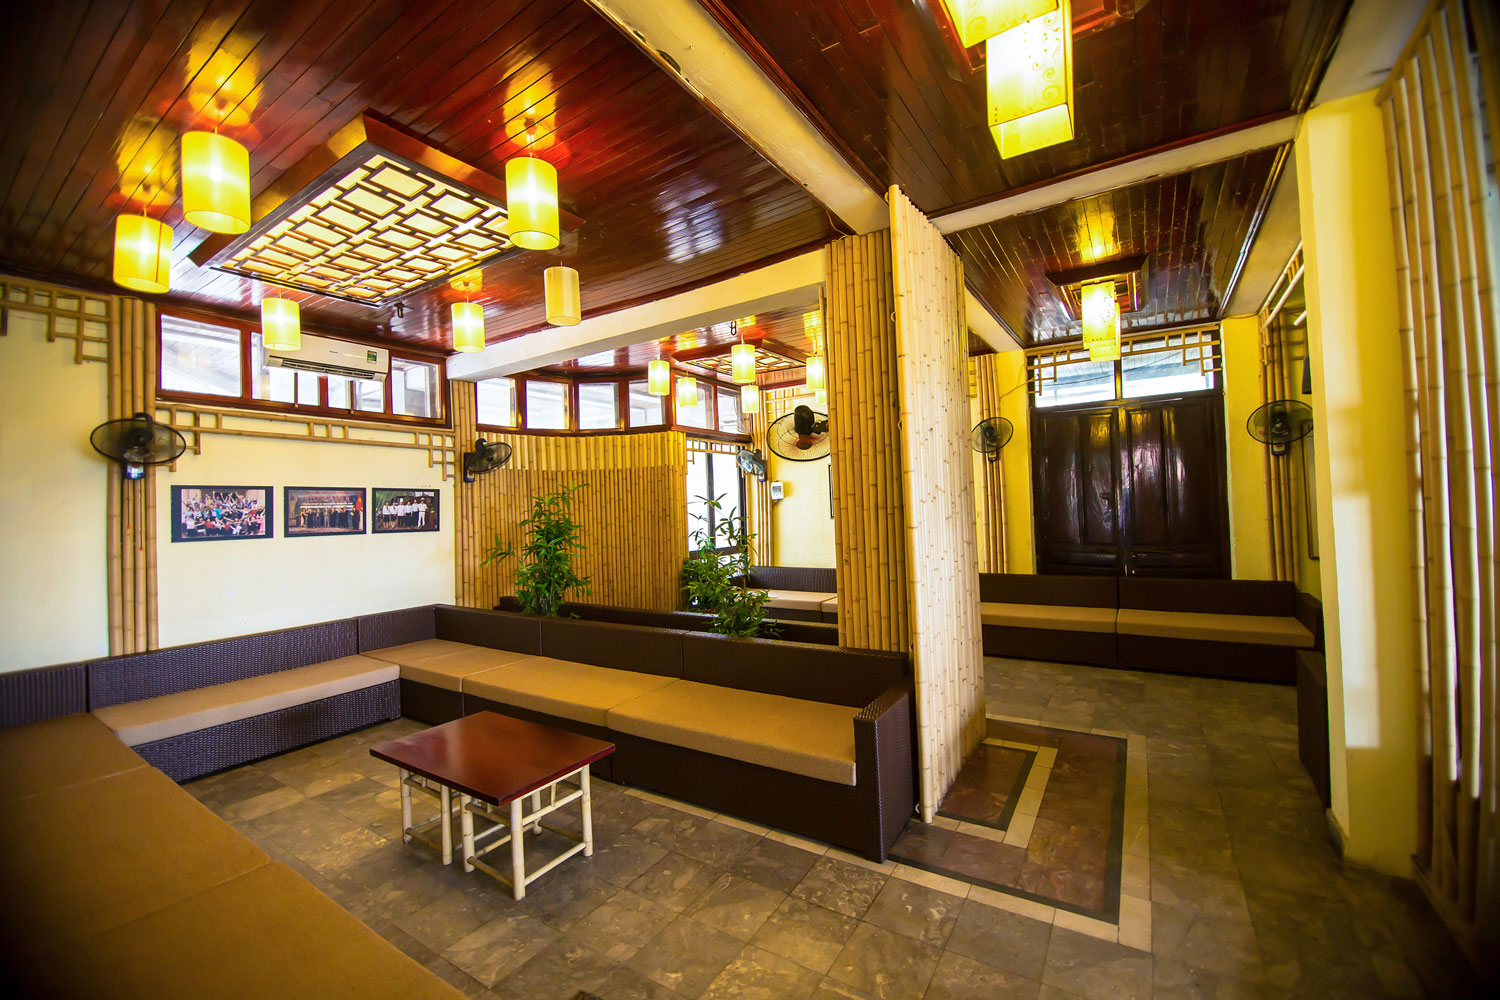 halong dragon legend cruise-public area.jpg